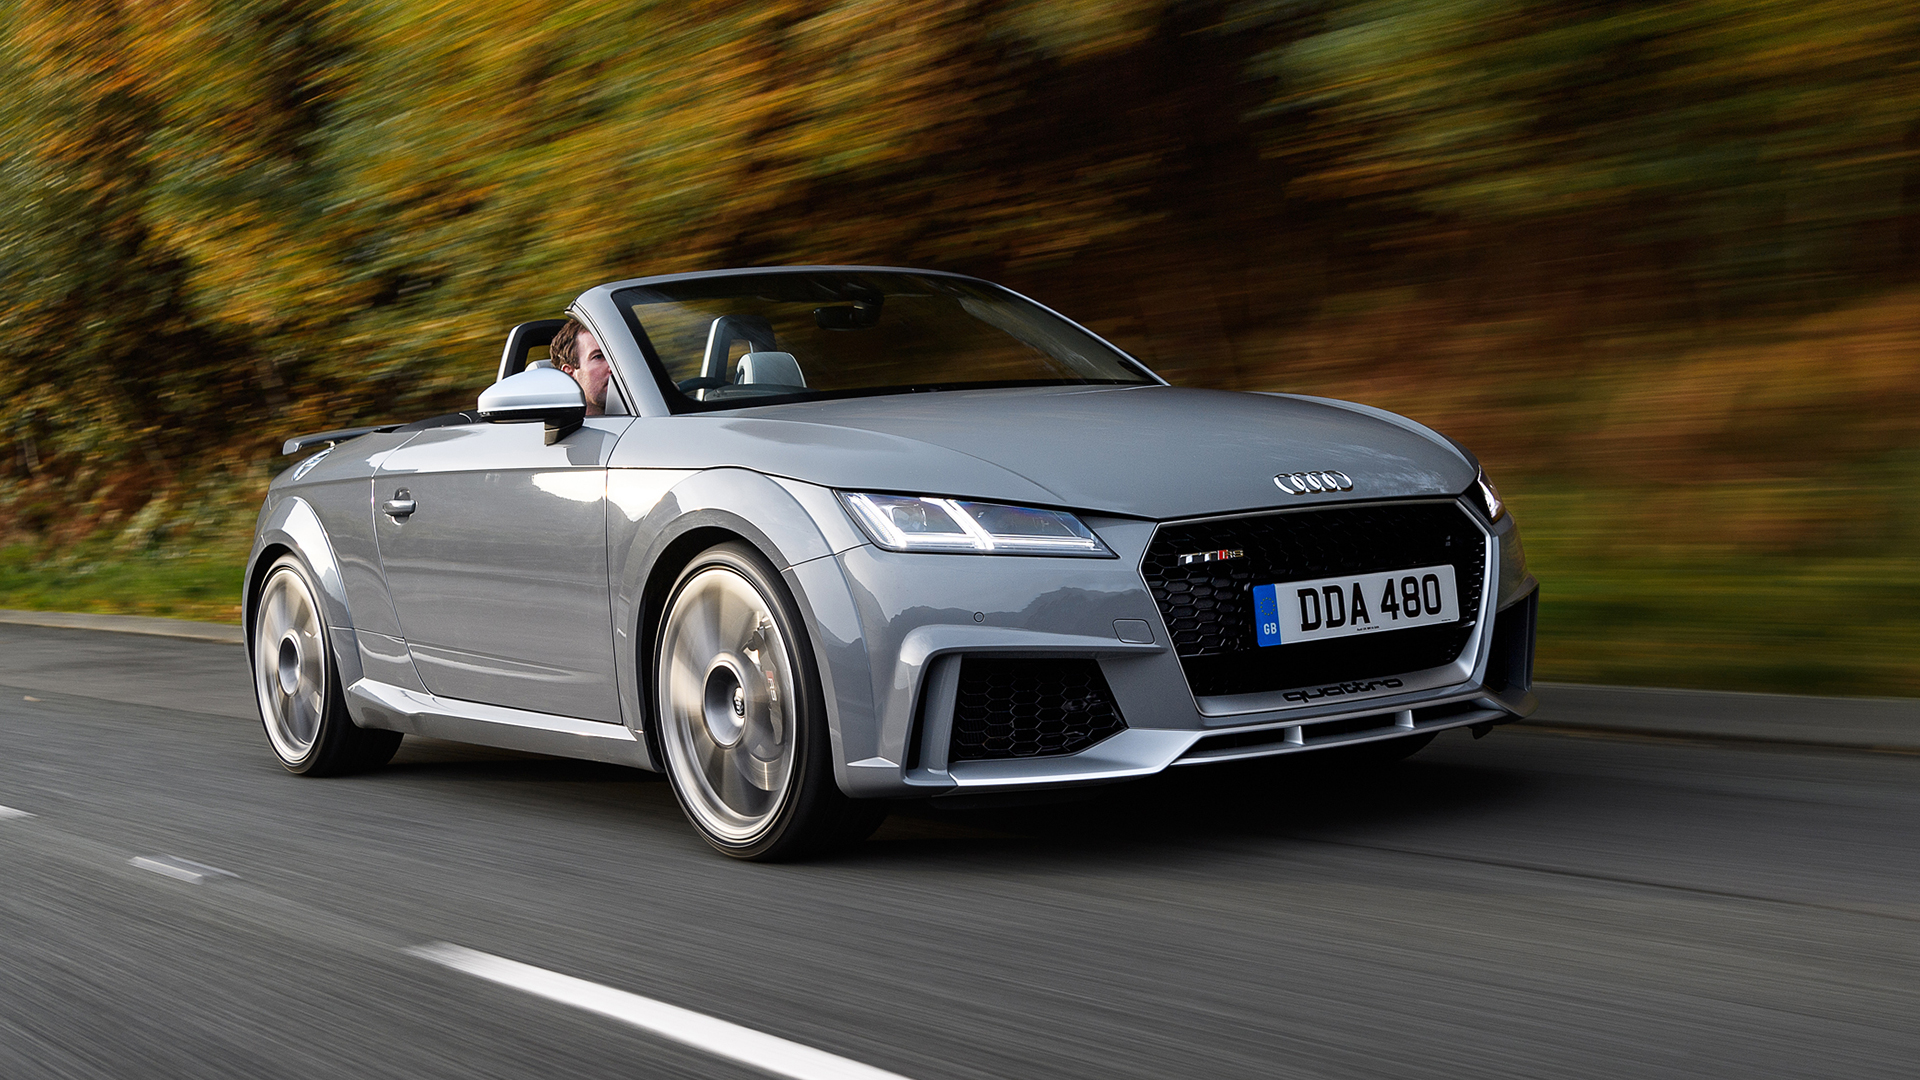 Grey Audi Tt Rs Used Cars For Sale On Auto Trader Uk